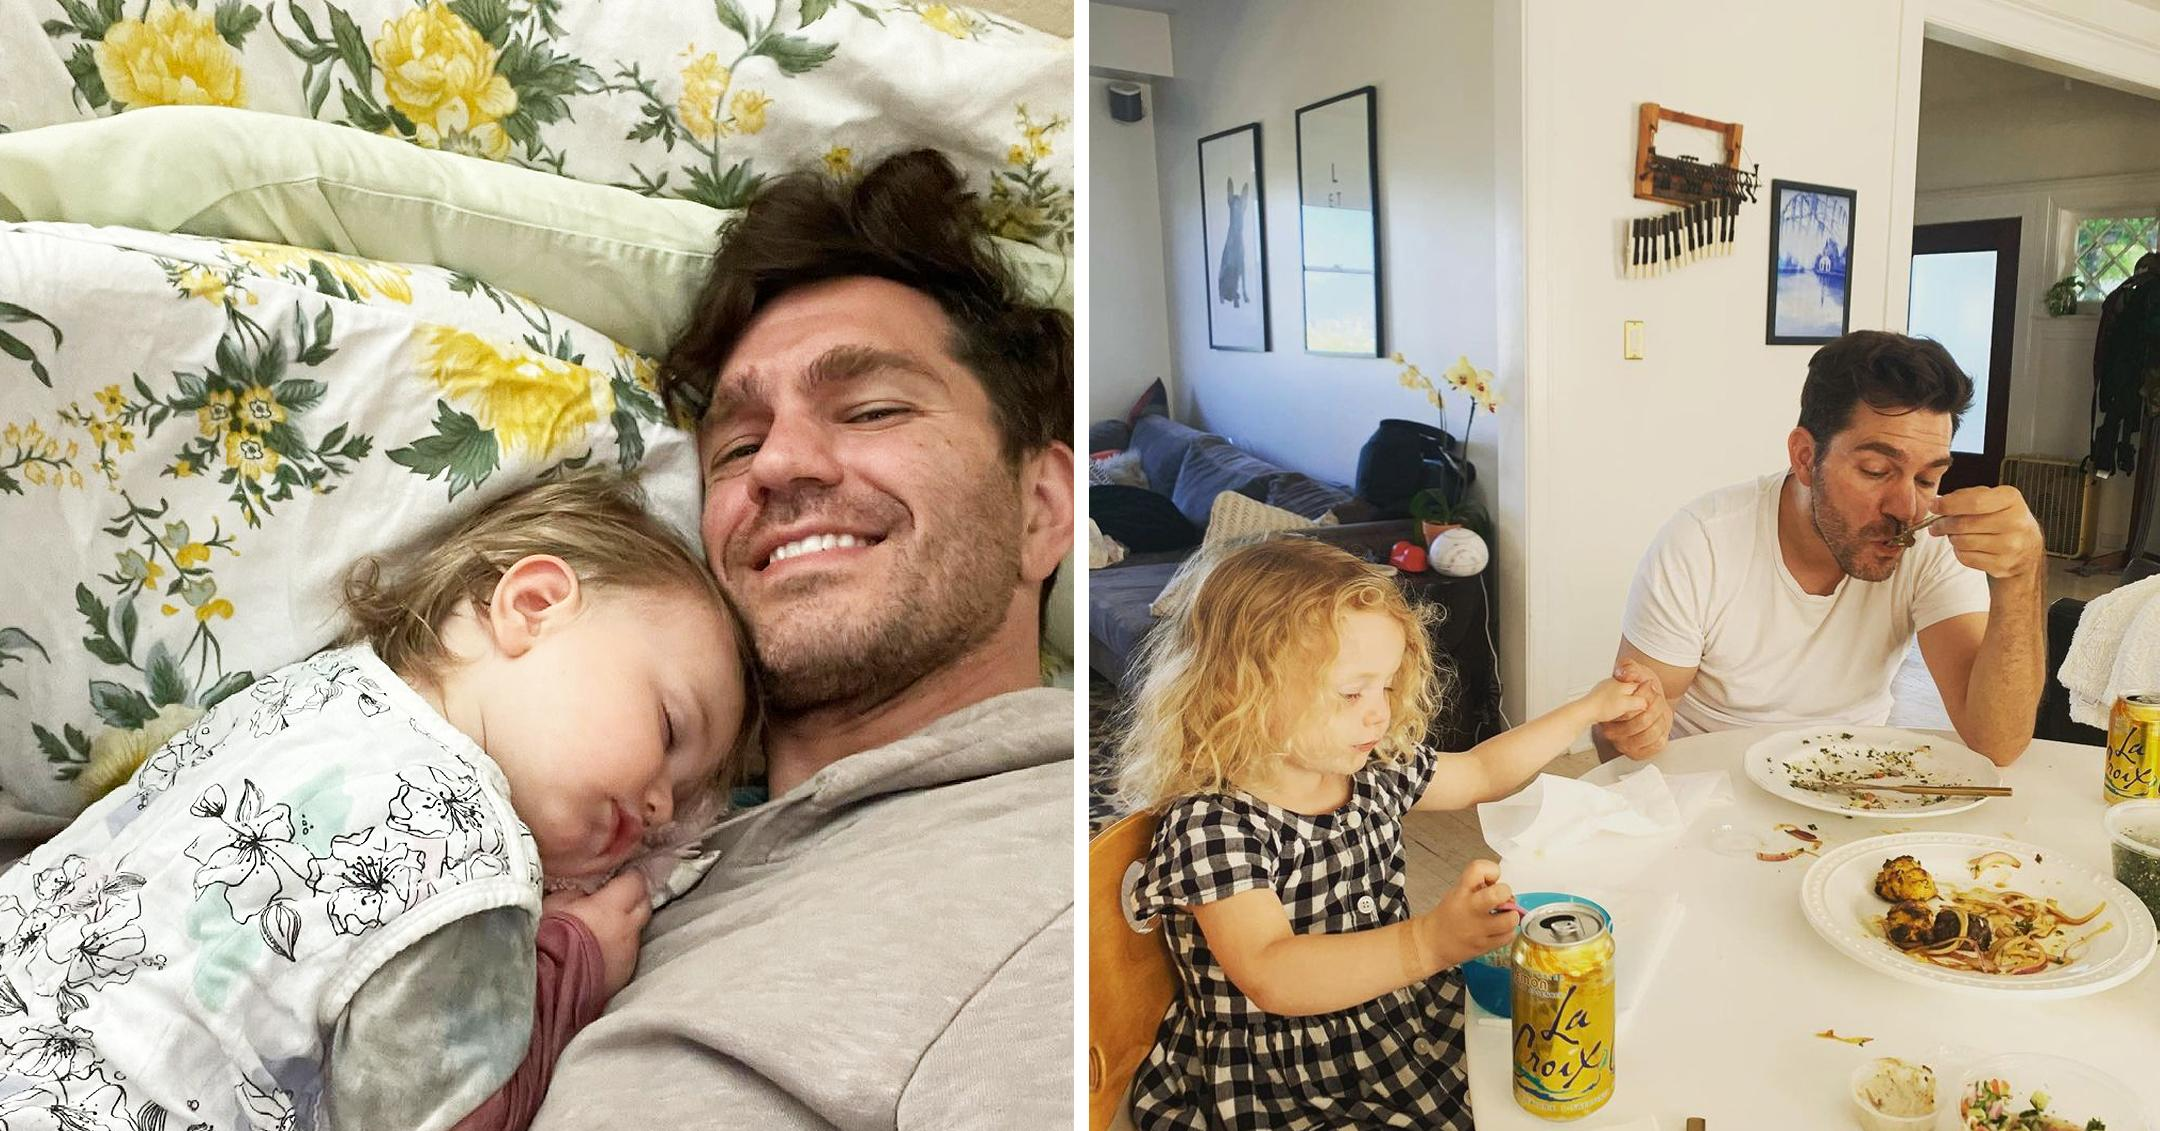 andy grammer says he wants to be a role model for daughter